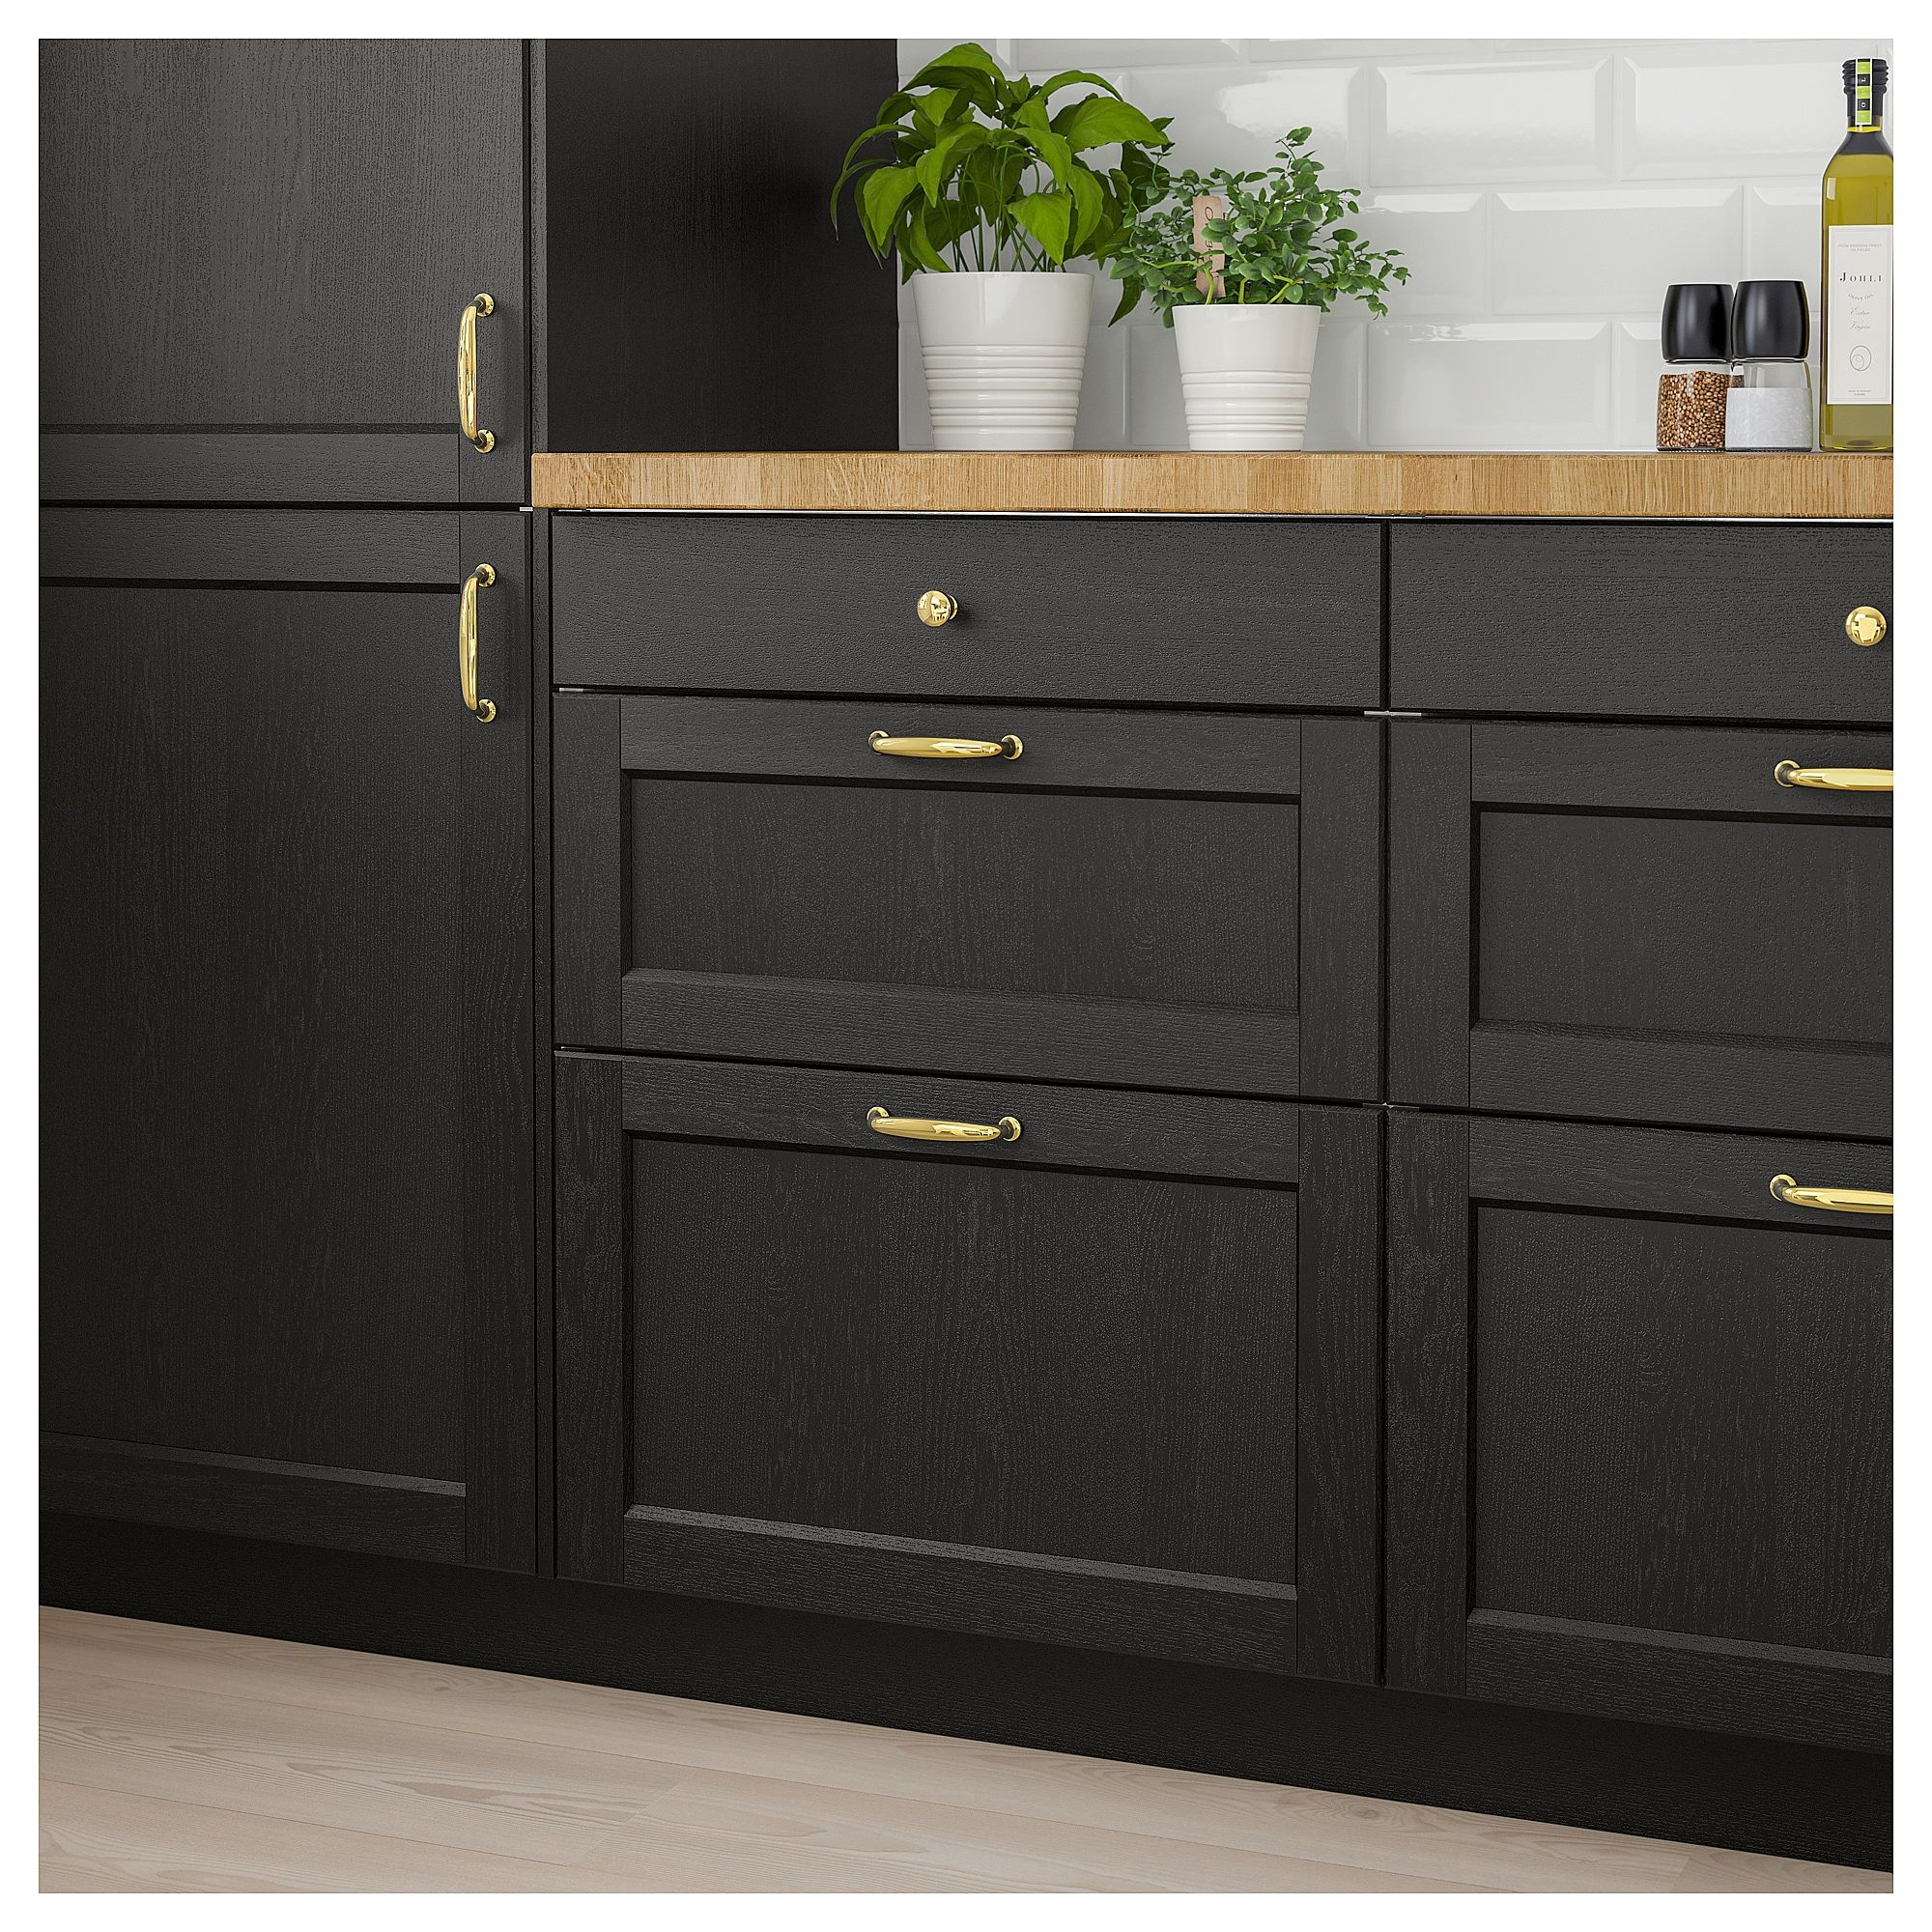 Black Kitchen Units Sale: LERHYTTAN Drawer Front Black Stained In 2019